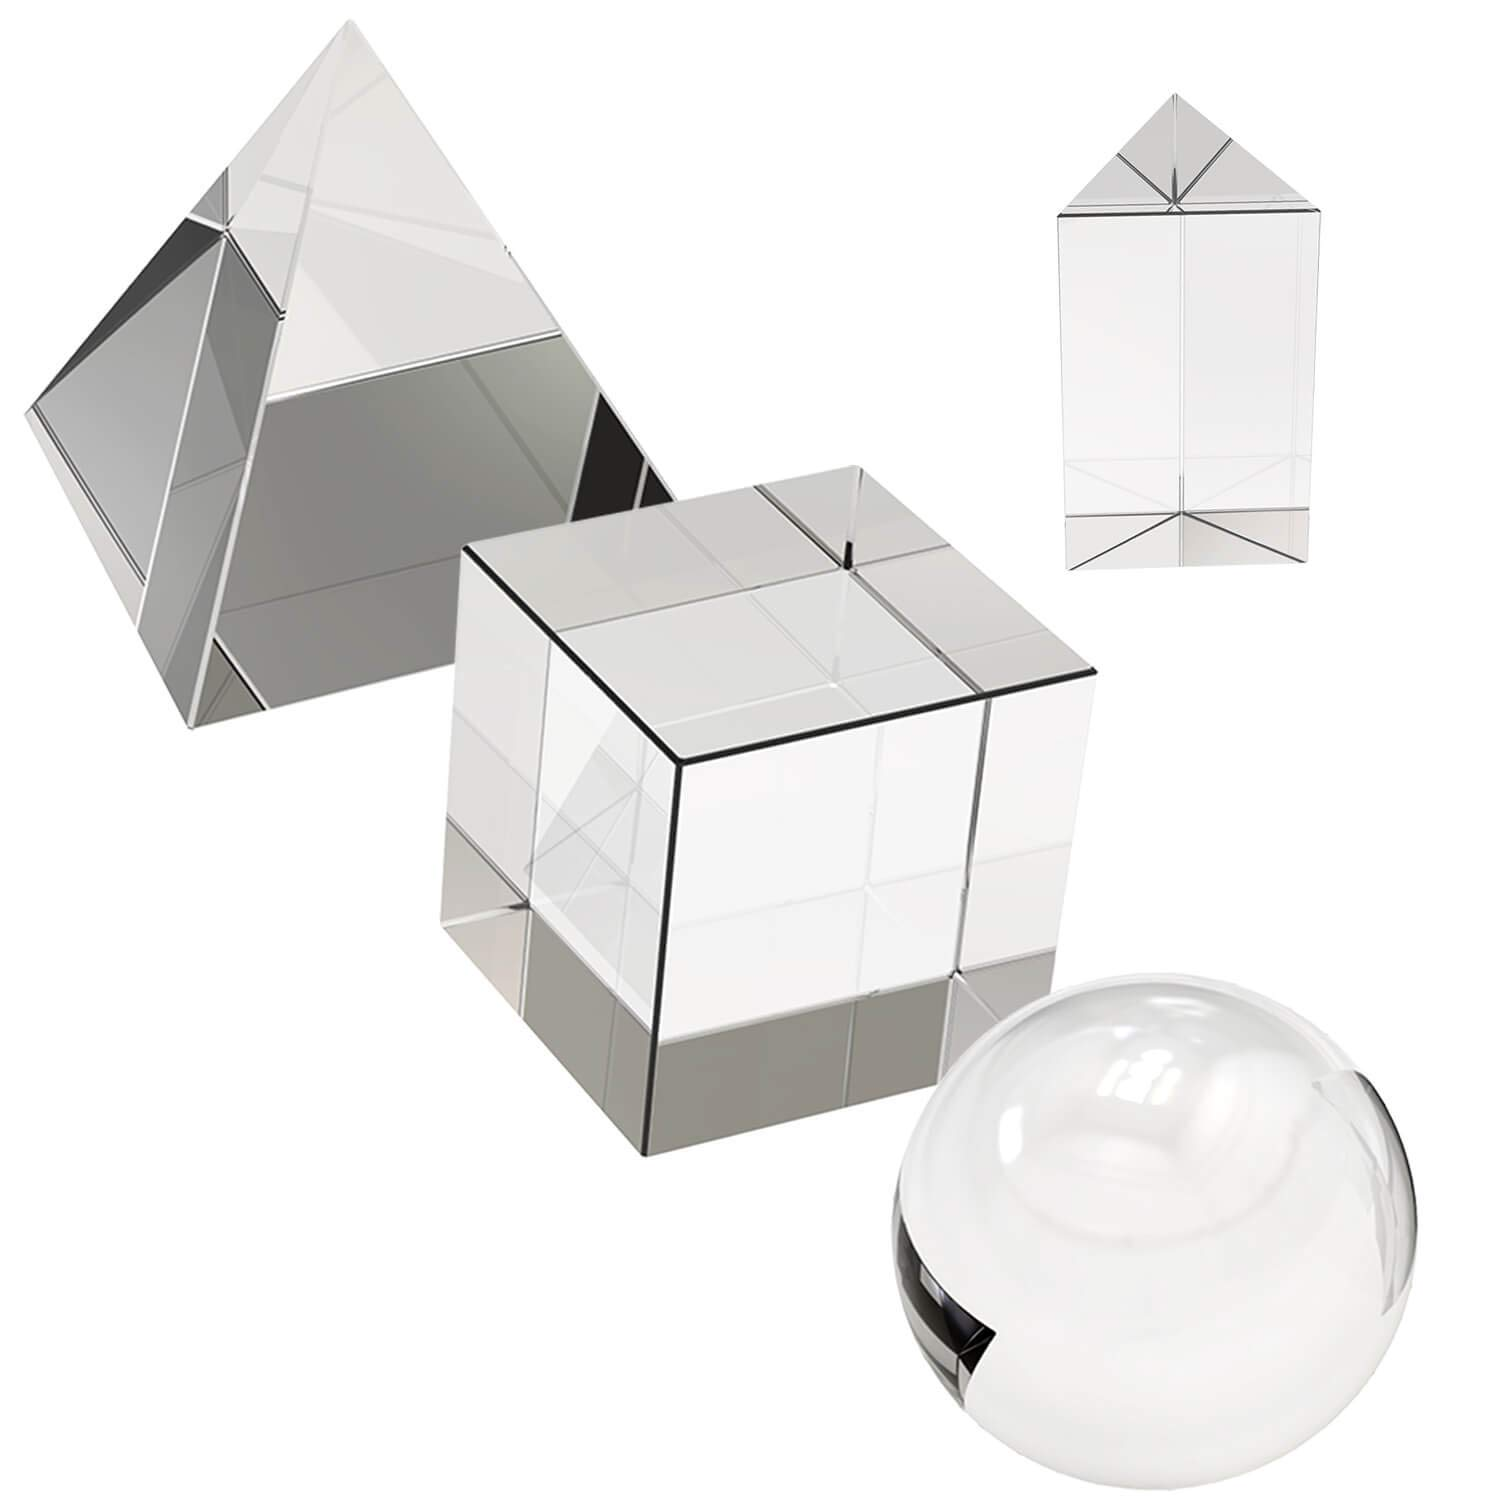 4 Pack K9 Optical Crystal Photography Prism Set, Include 50mm Crystal Ball, 50mm Crystal Cube, 50mm Triangular Prism, 60mm Optical Pyramid with Gift Box for Teaching Light, Education, Photography